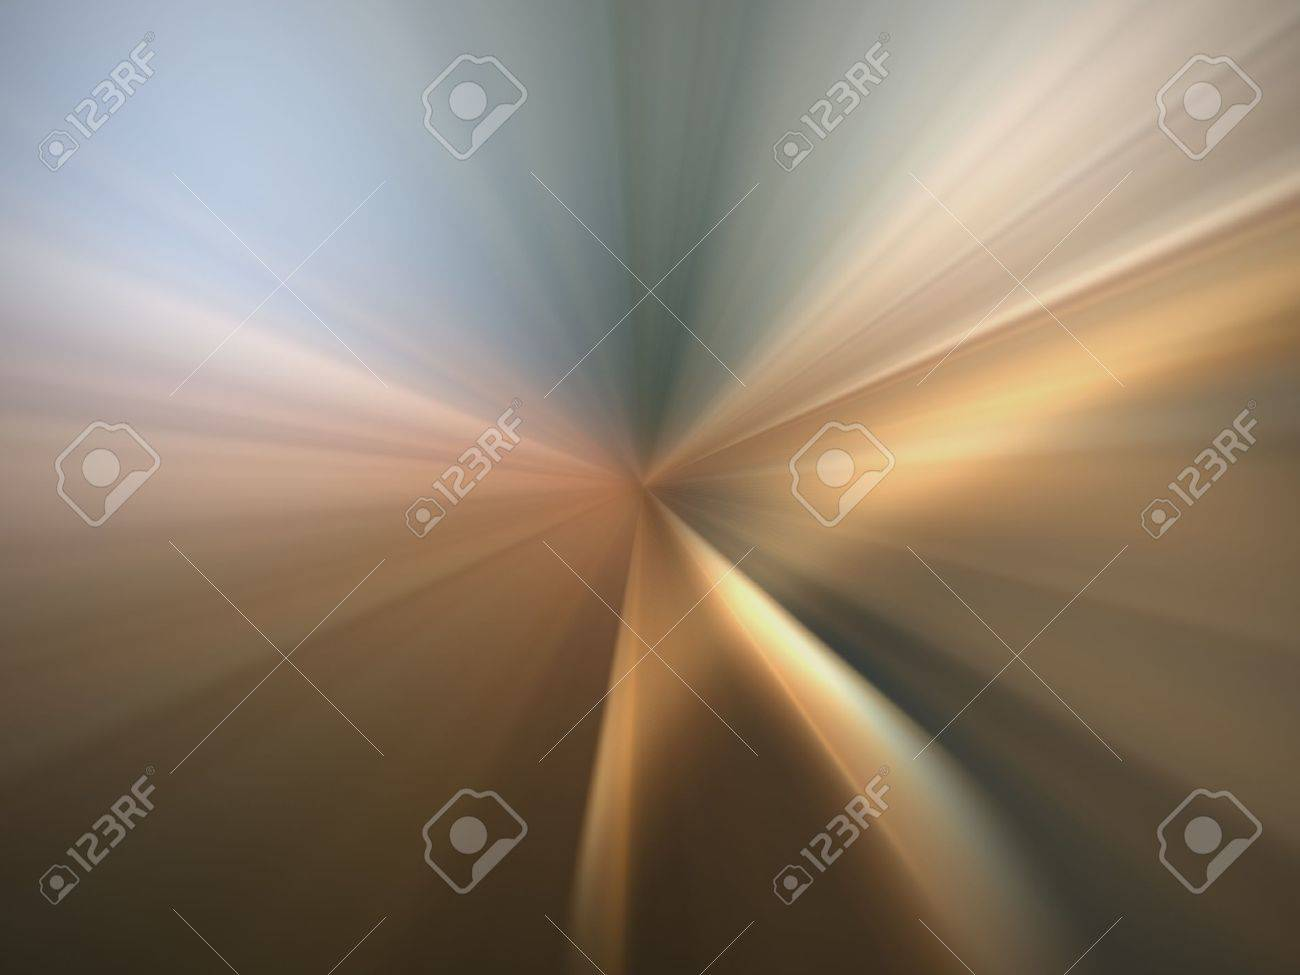 abstract illustration background wallpaper space Stock Illustration - 9960921